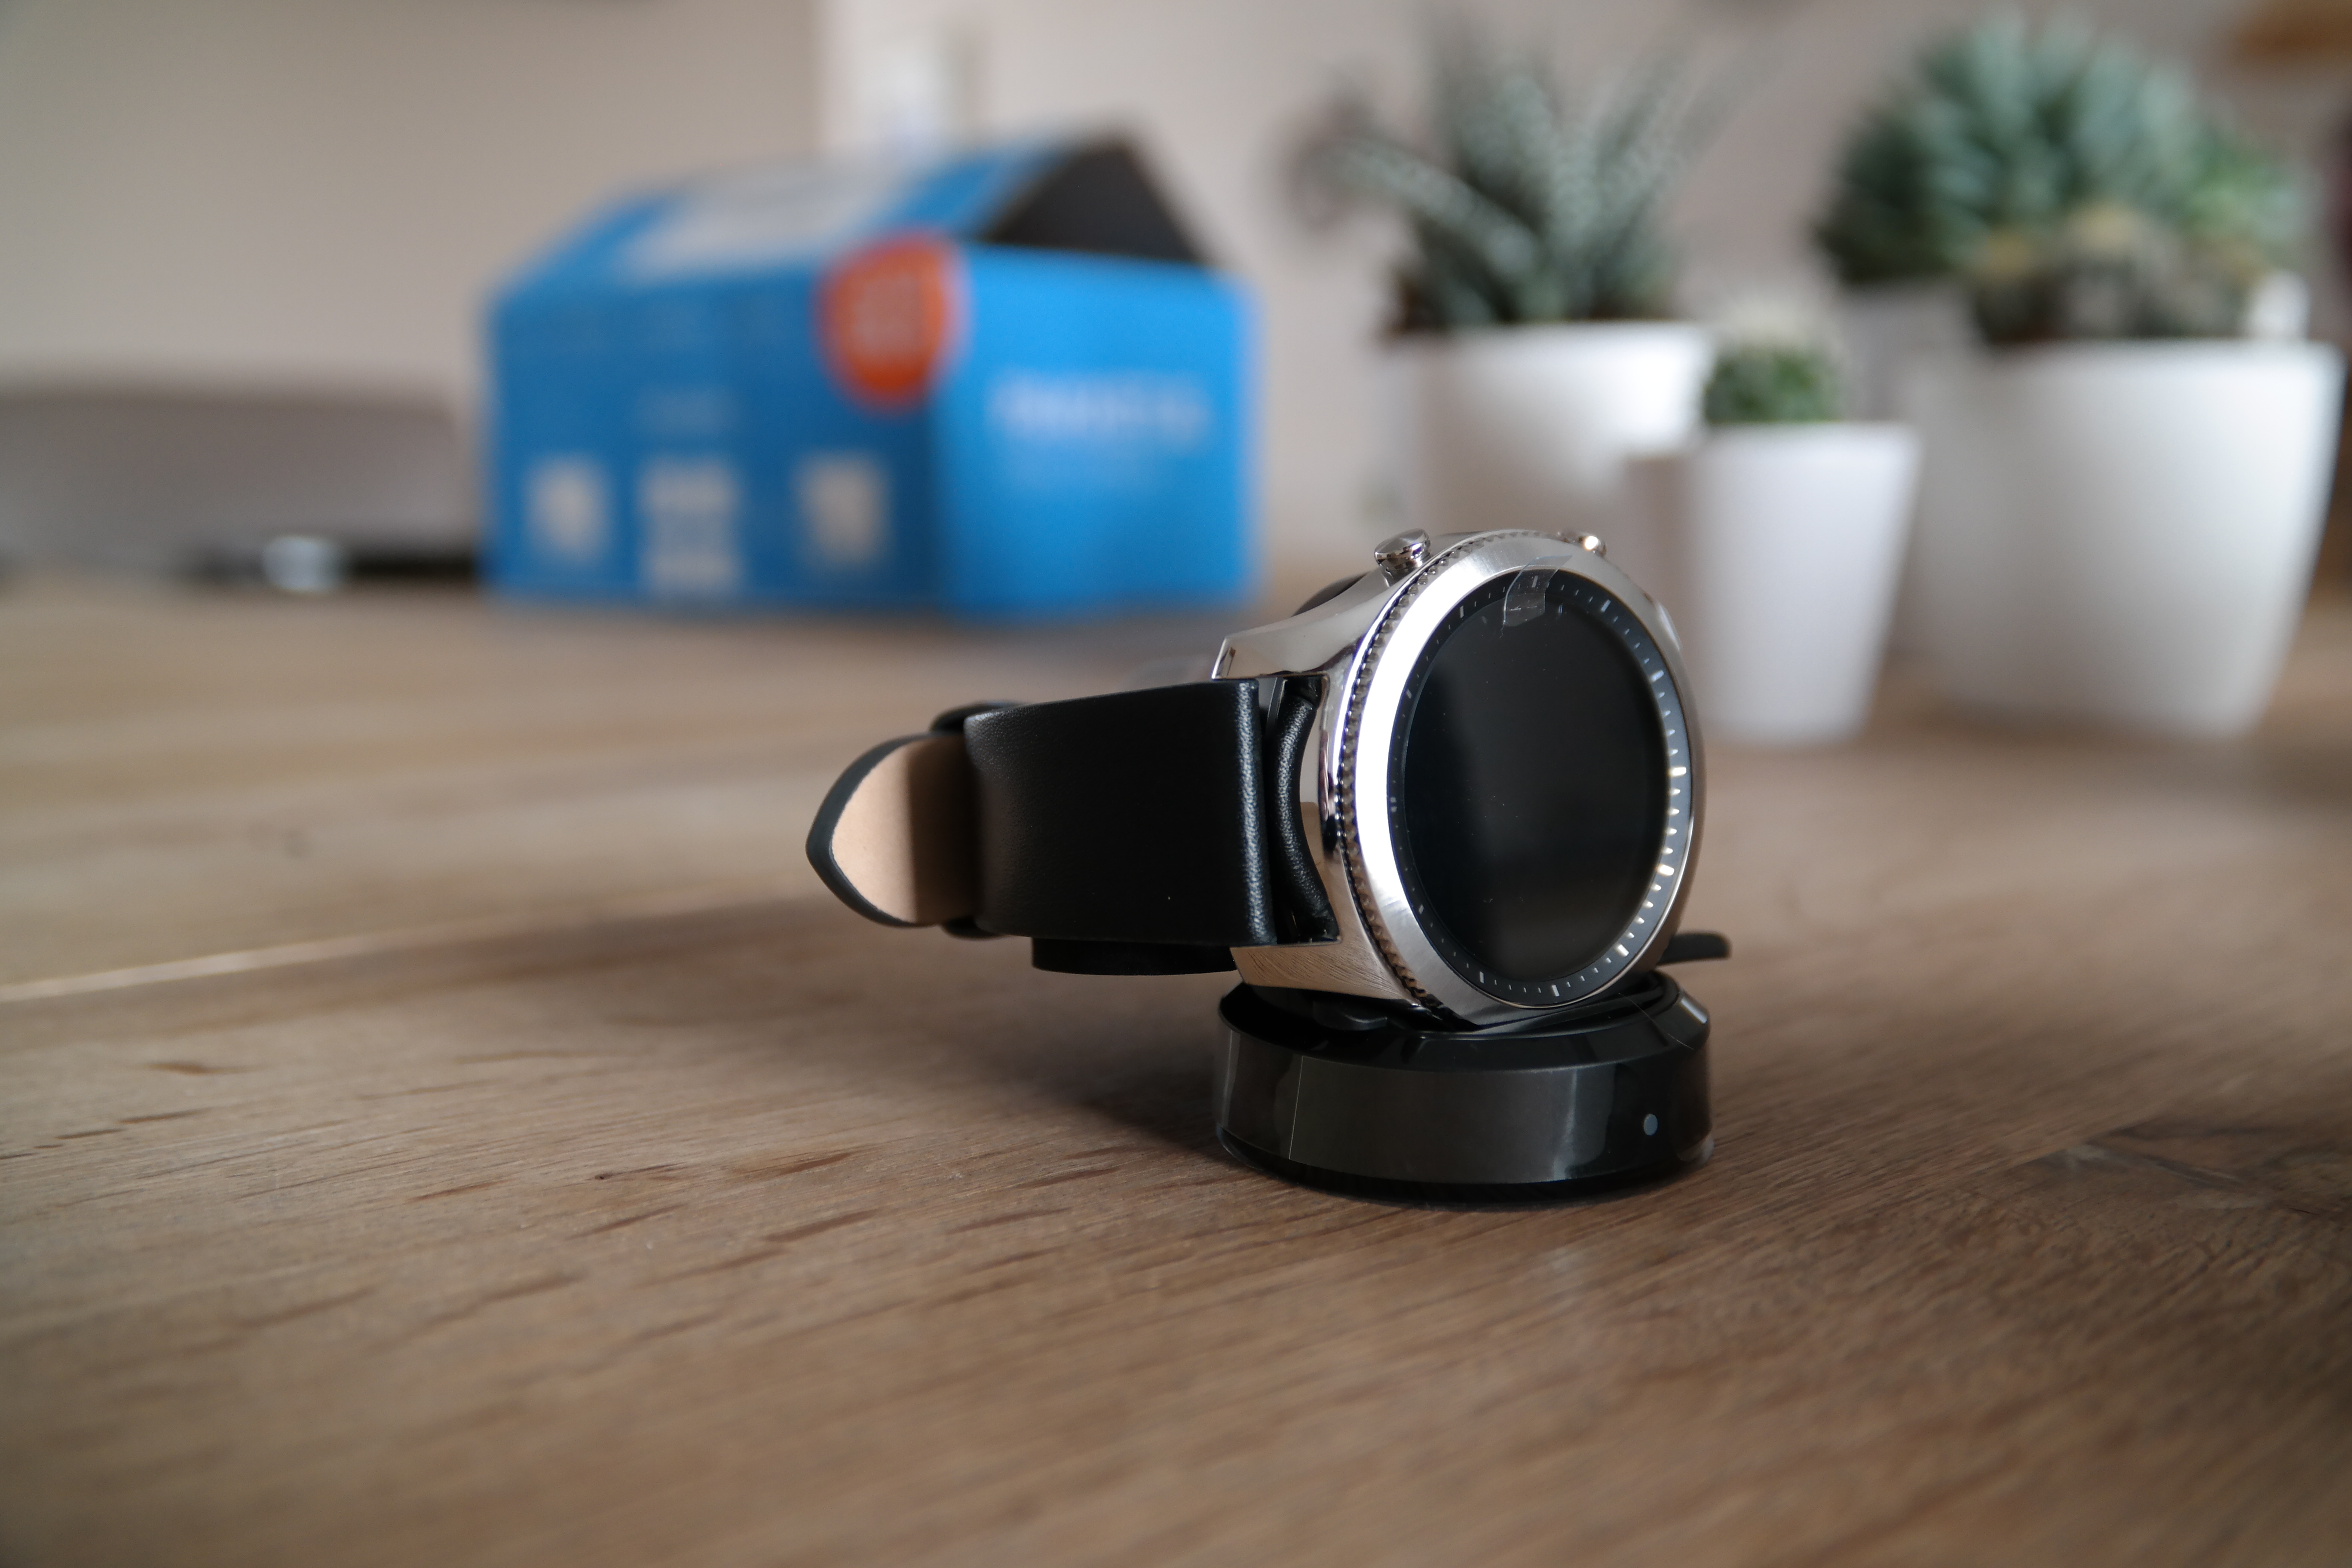 The Samsung Gear S3: Reviewed!